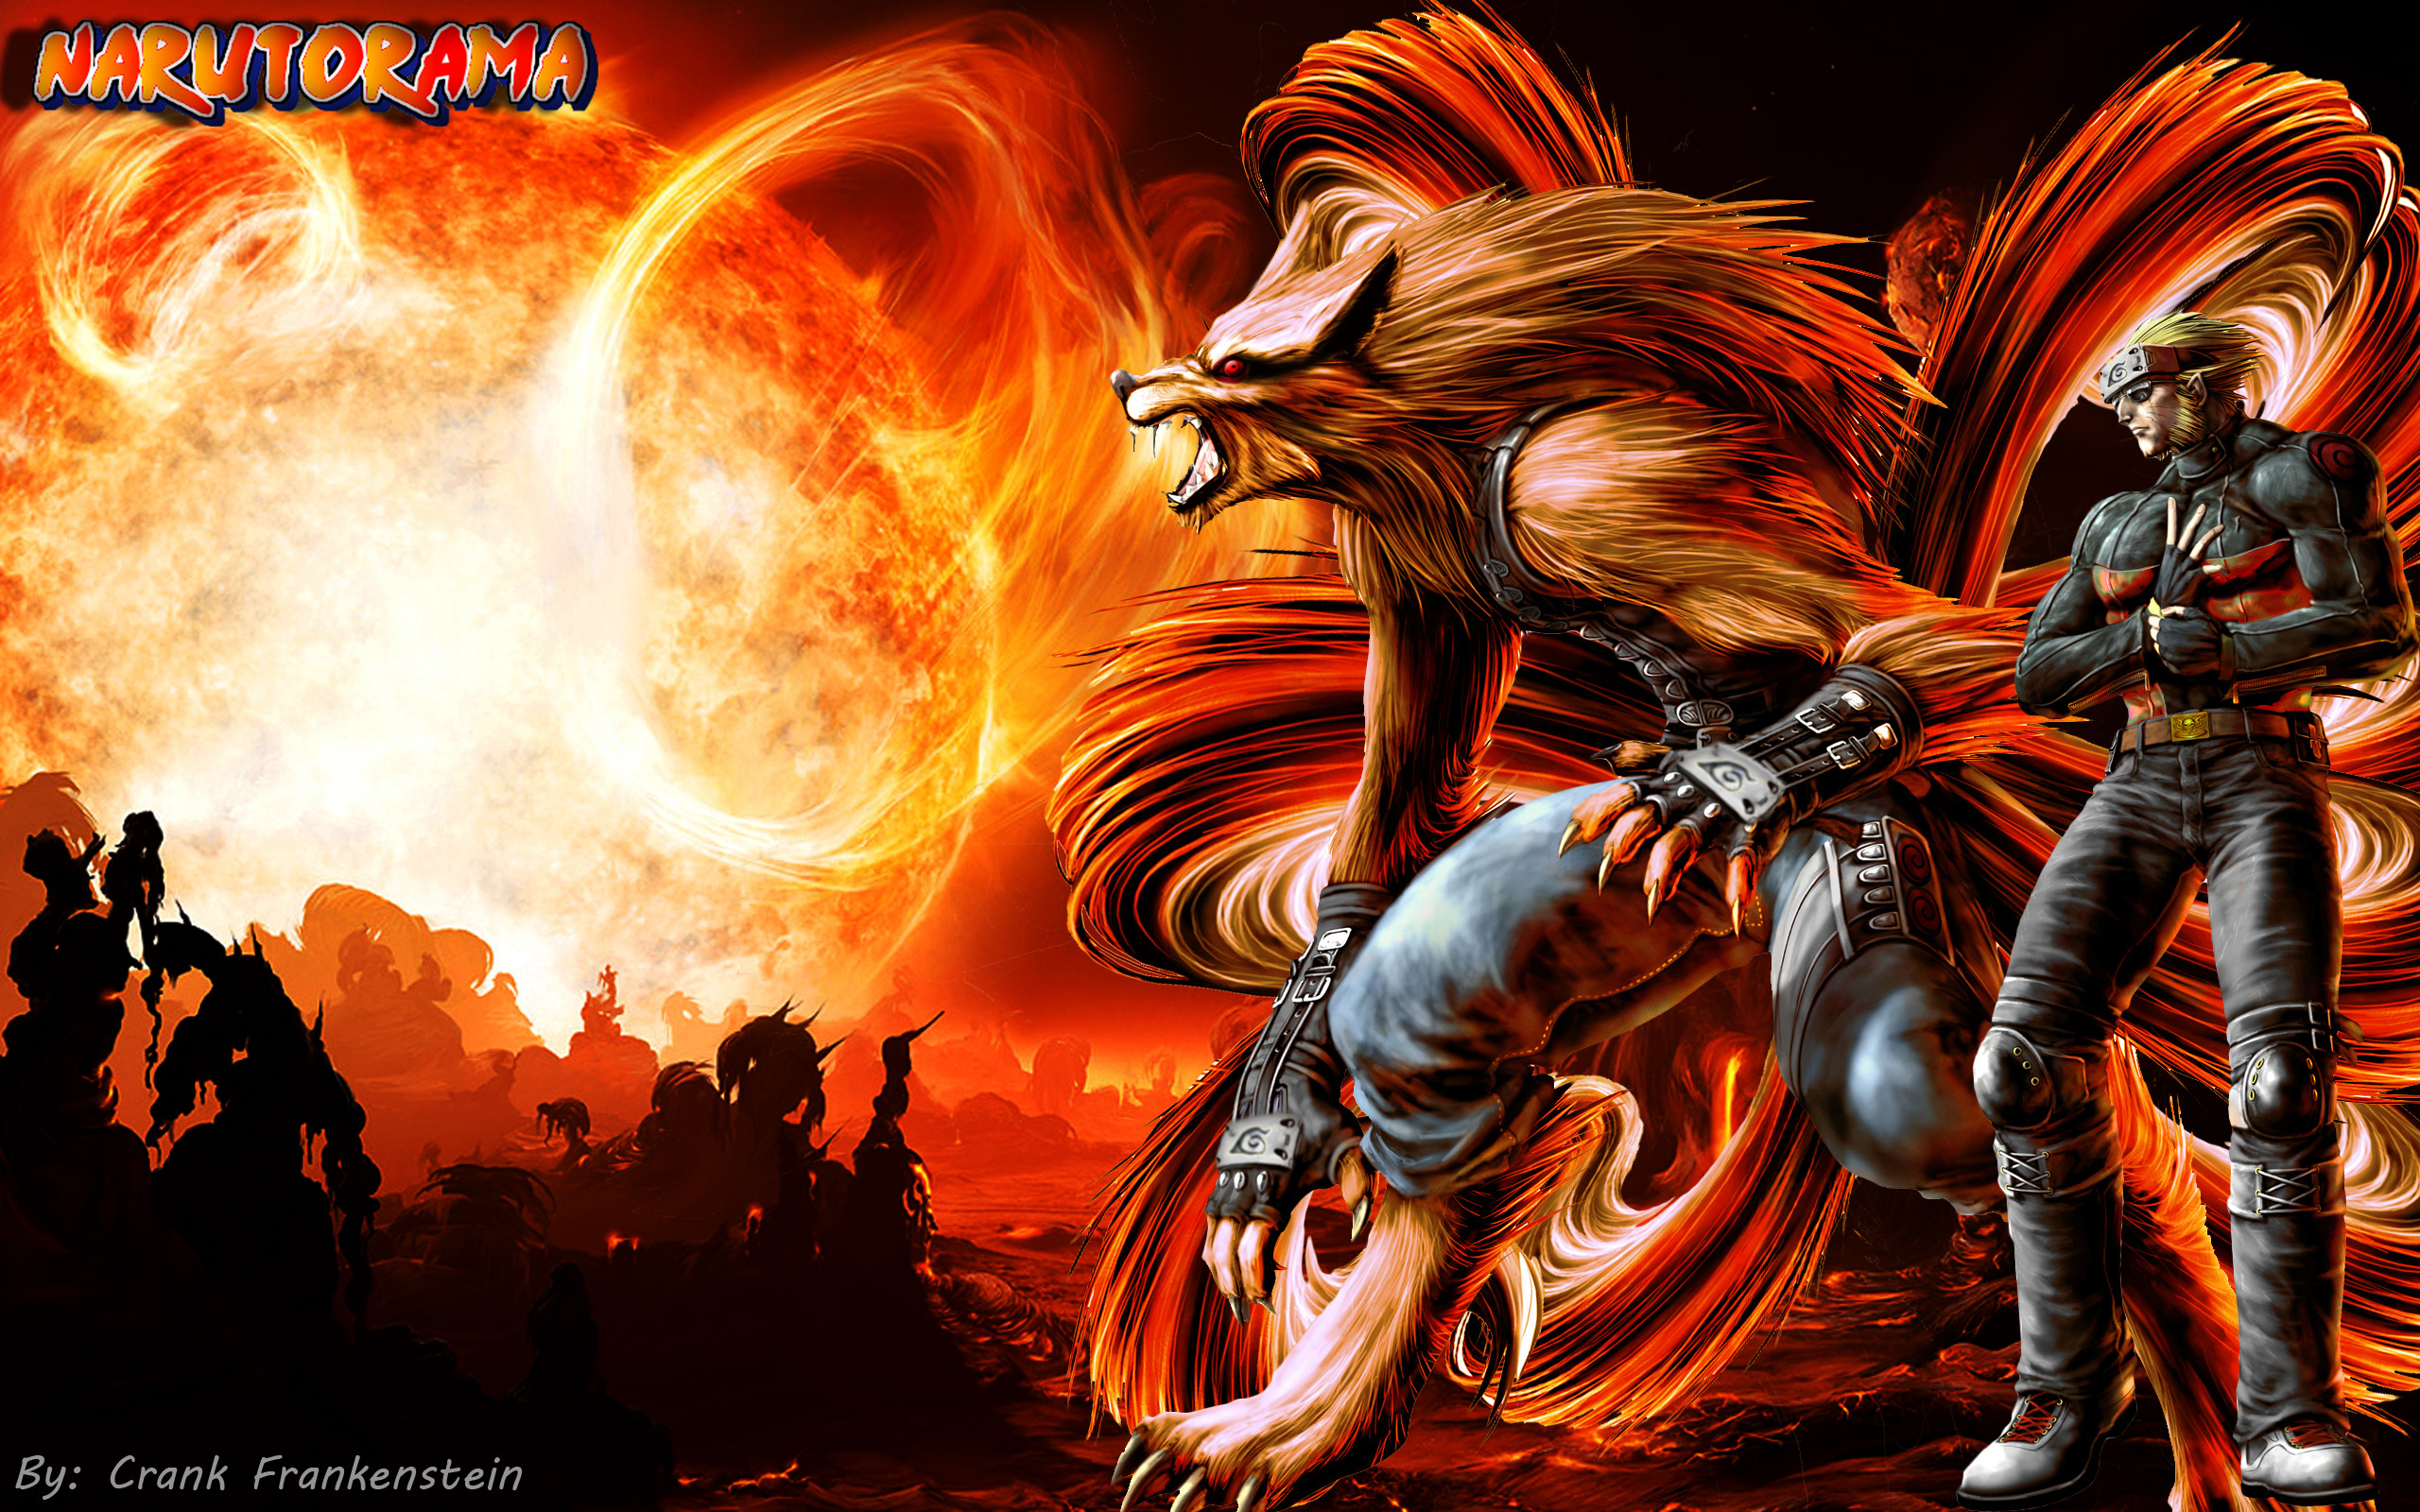 2560 x 1600 - 3542k - jpg 6836 Nine-Tails and Naruto ...